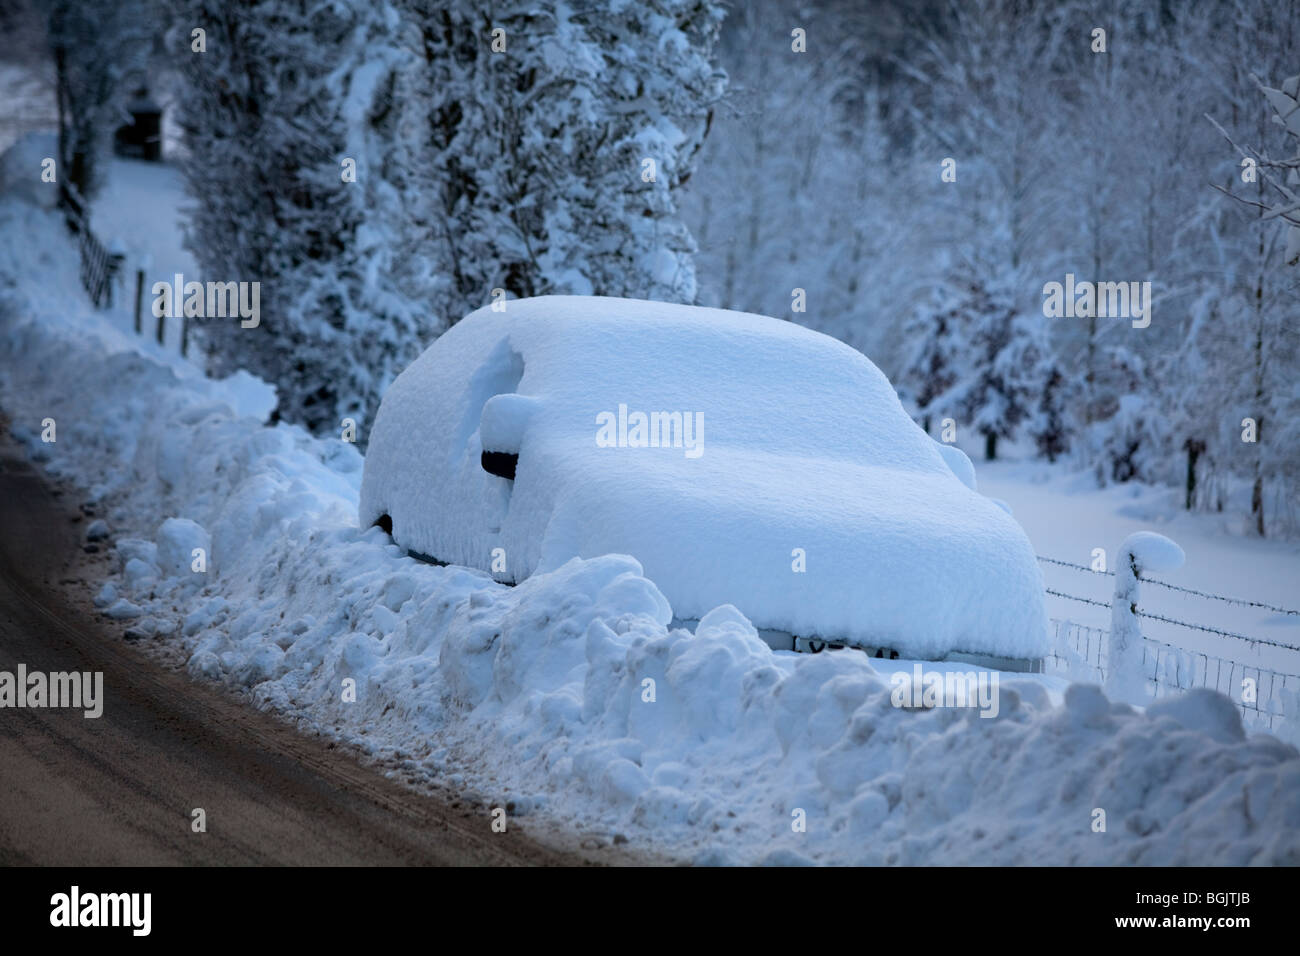 A car stranded in snow by the side of a road in Broadway, Worcestershire, UK - Stock Image